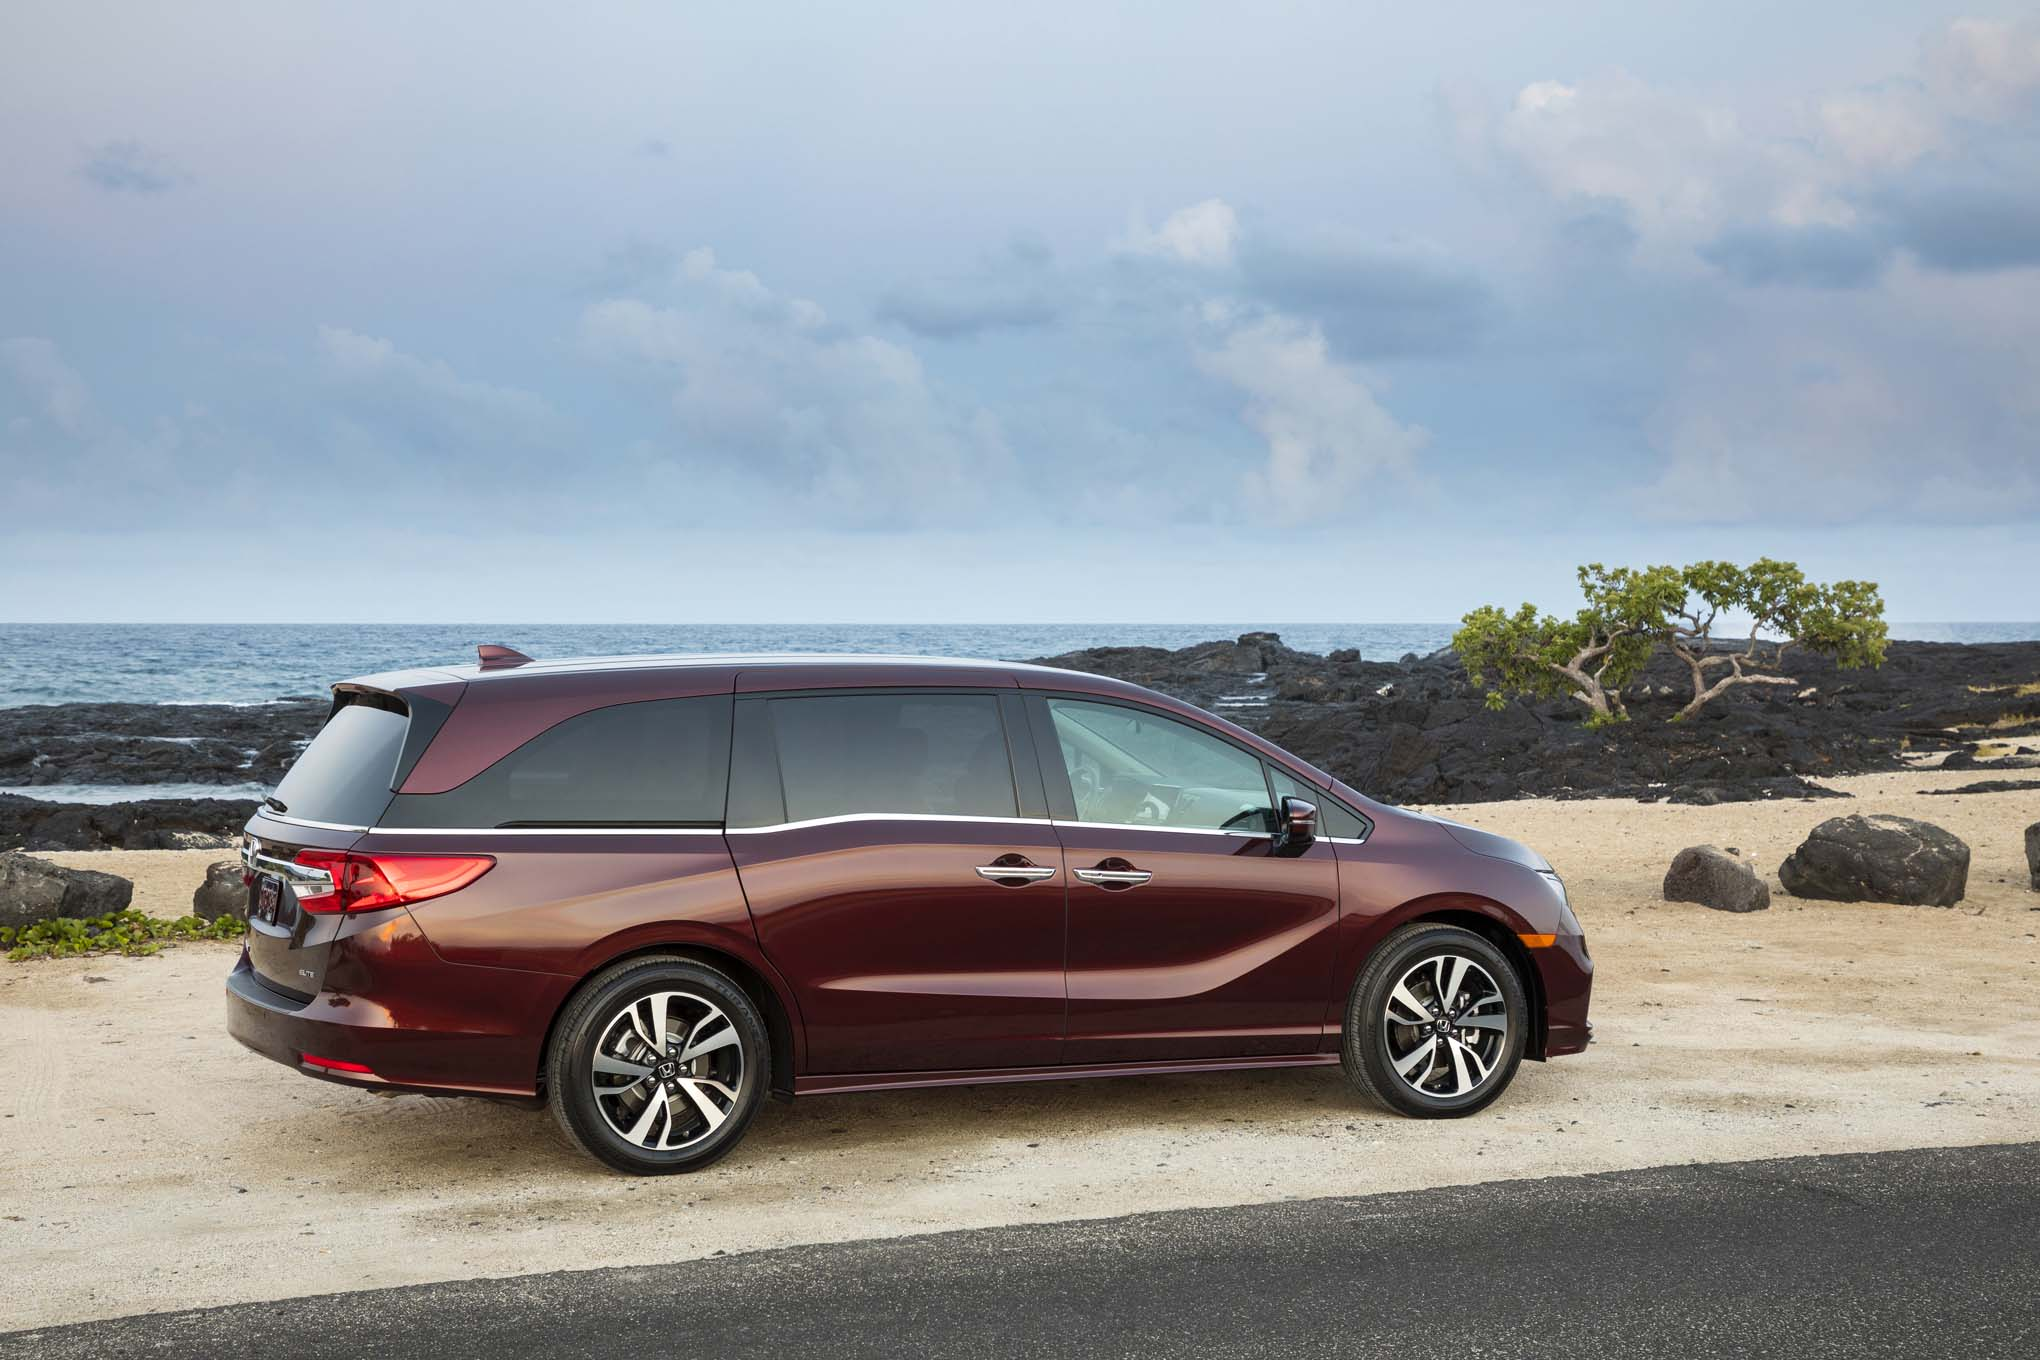 2018 Honda Odyssey Rear Three Quarter 05